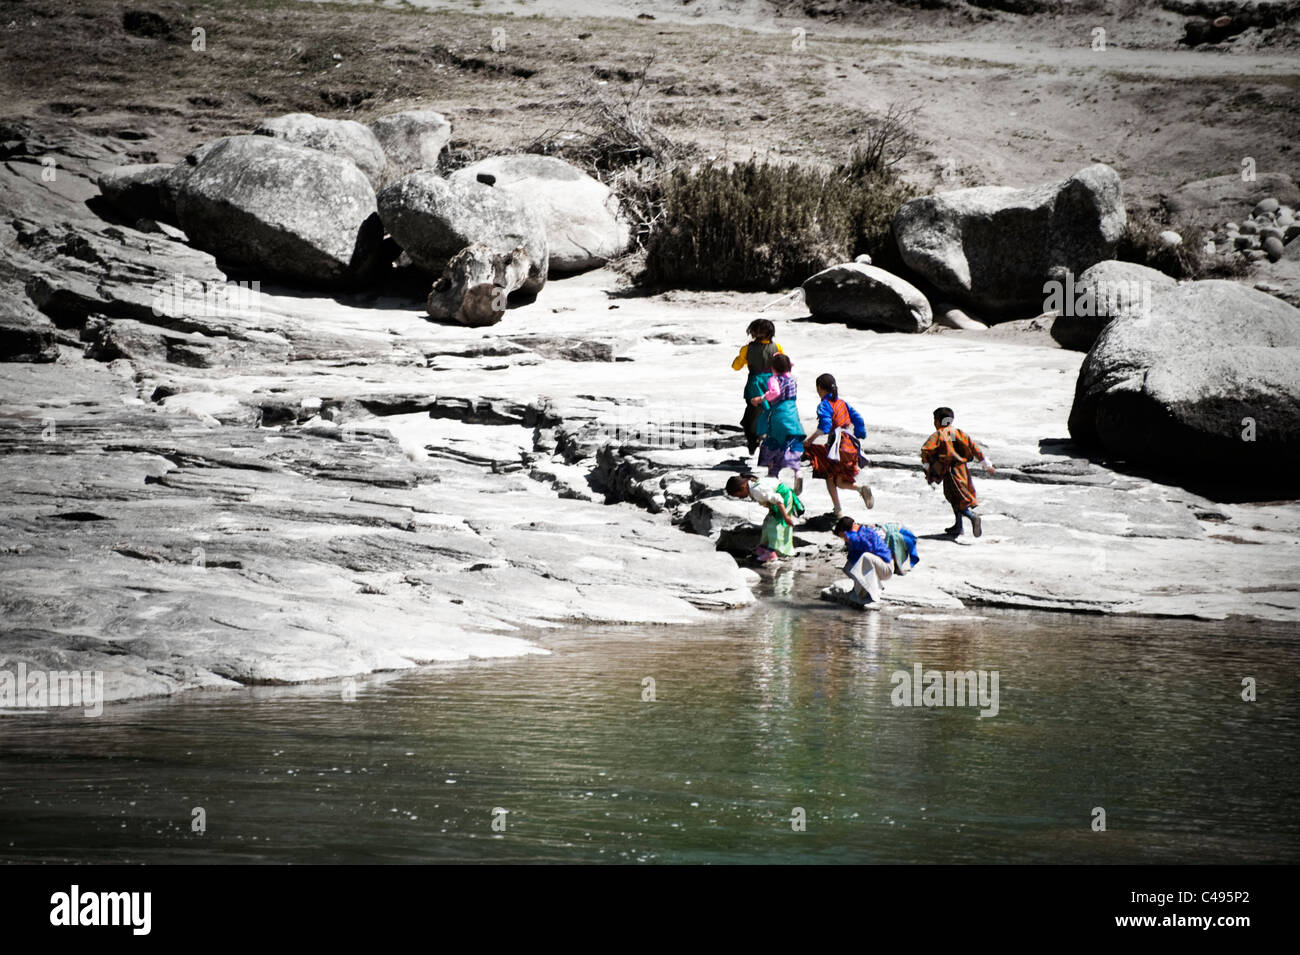 A group of young Bhutanese children run along the river bank, Bhutan - Stock Image